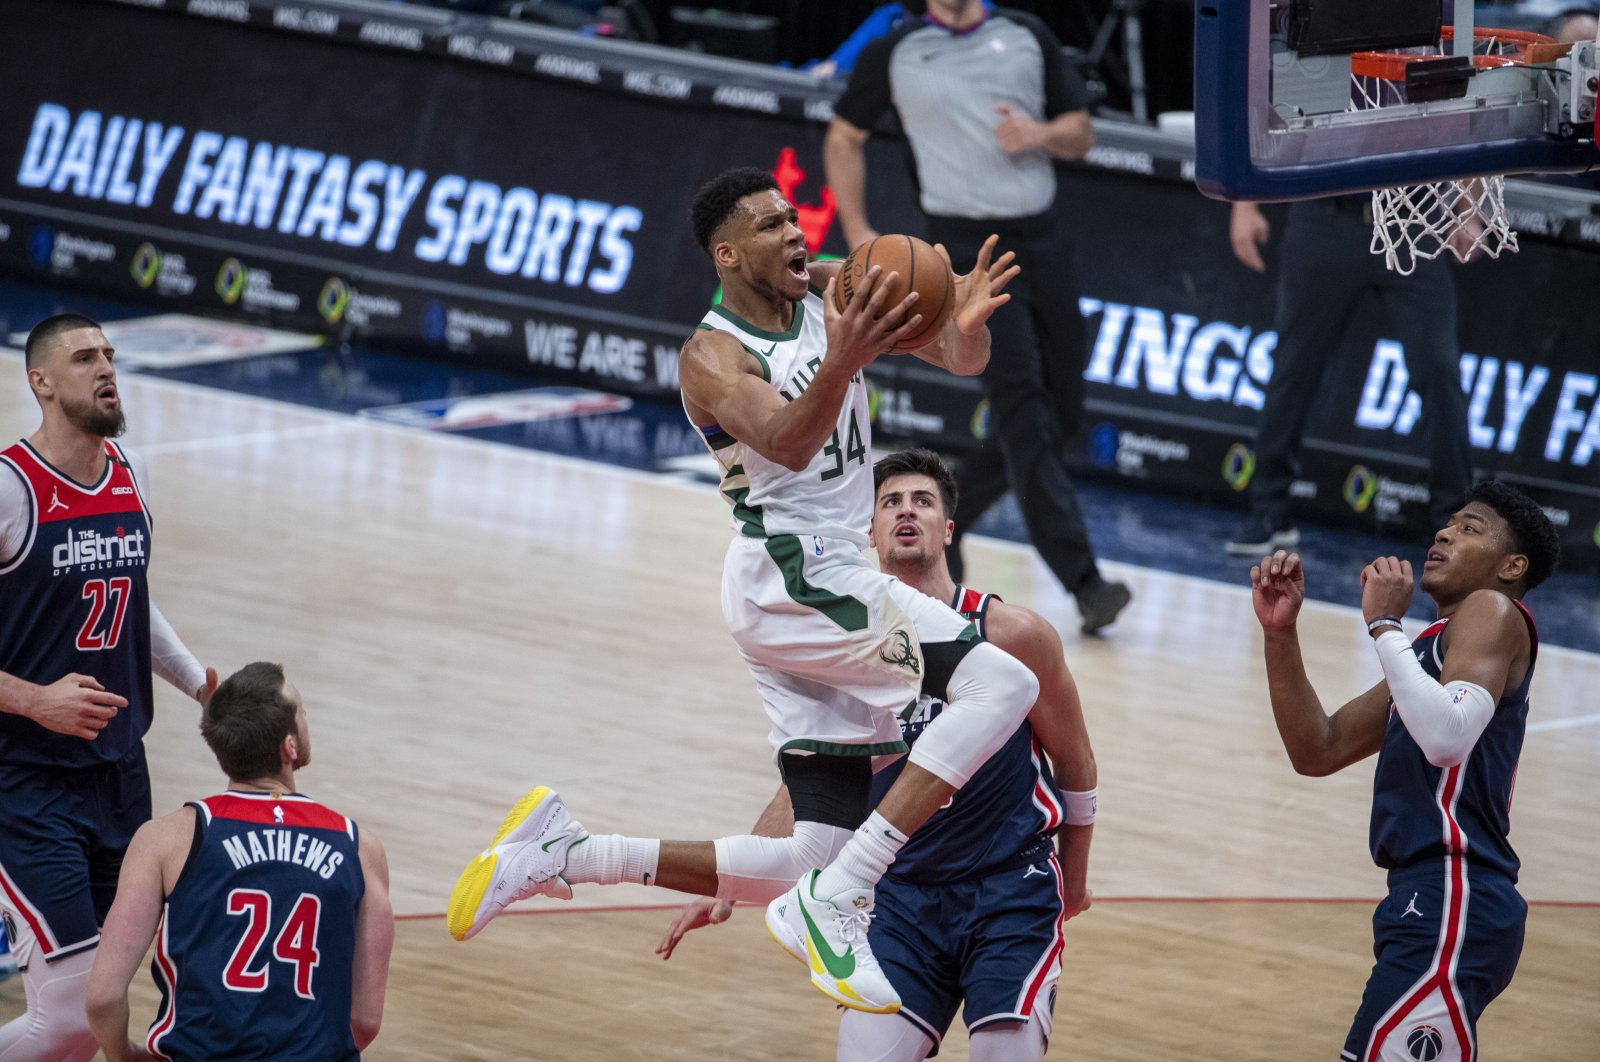 Milwaukee Bucks forward Giannis Antetokounmpo goes to the basket against the Washington Wizards during an NBA game at Capital One Arena, Washington, D.C., March 13, 2021. (EPA Photo)